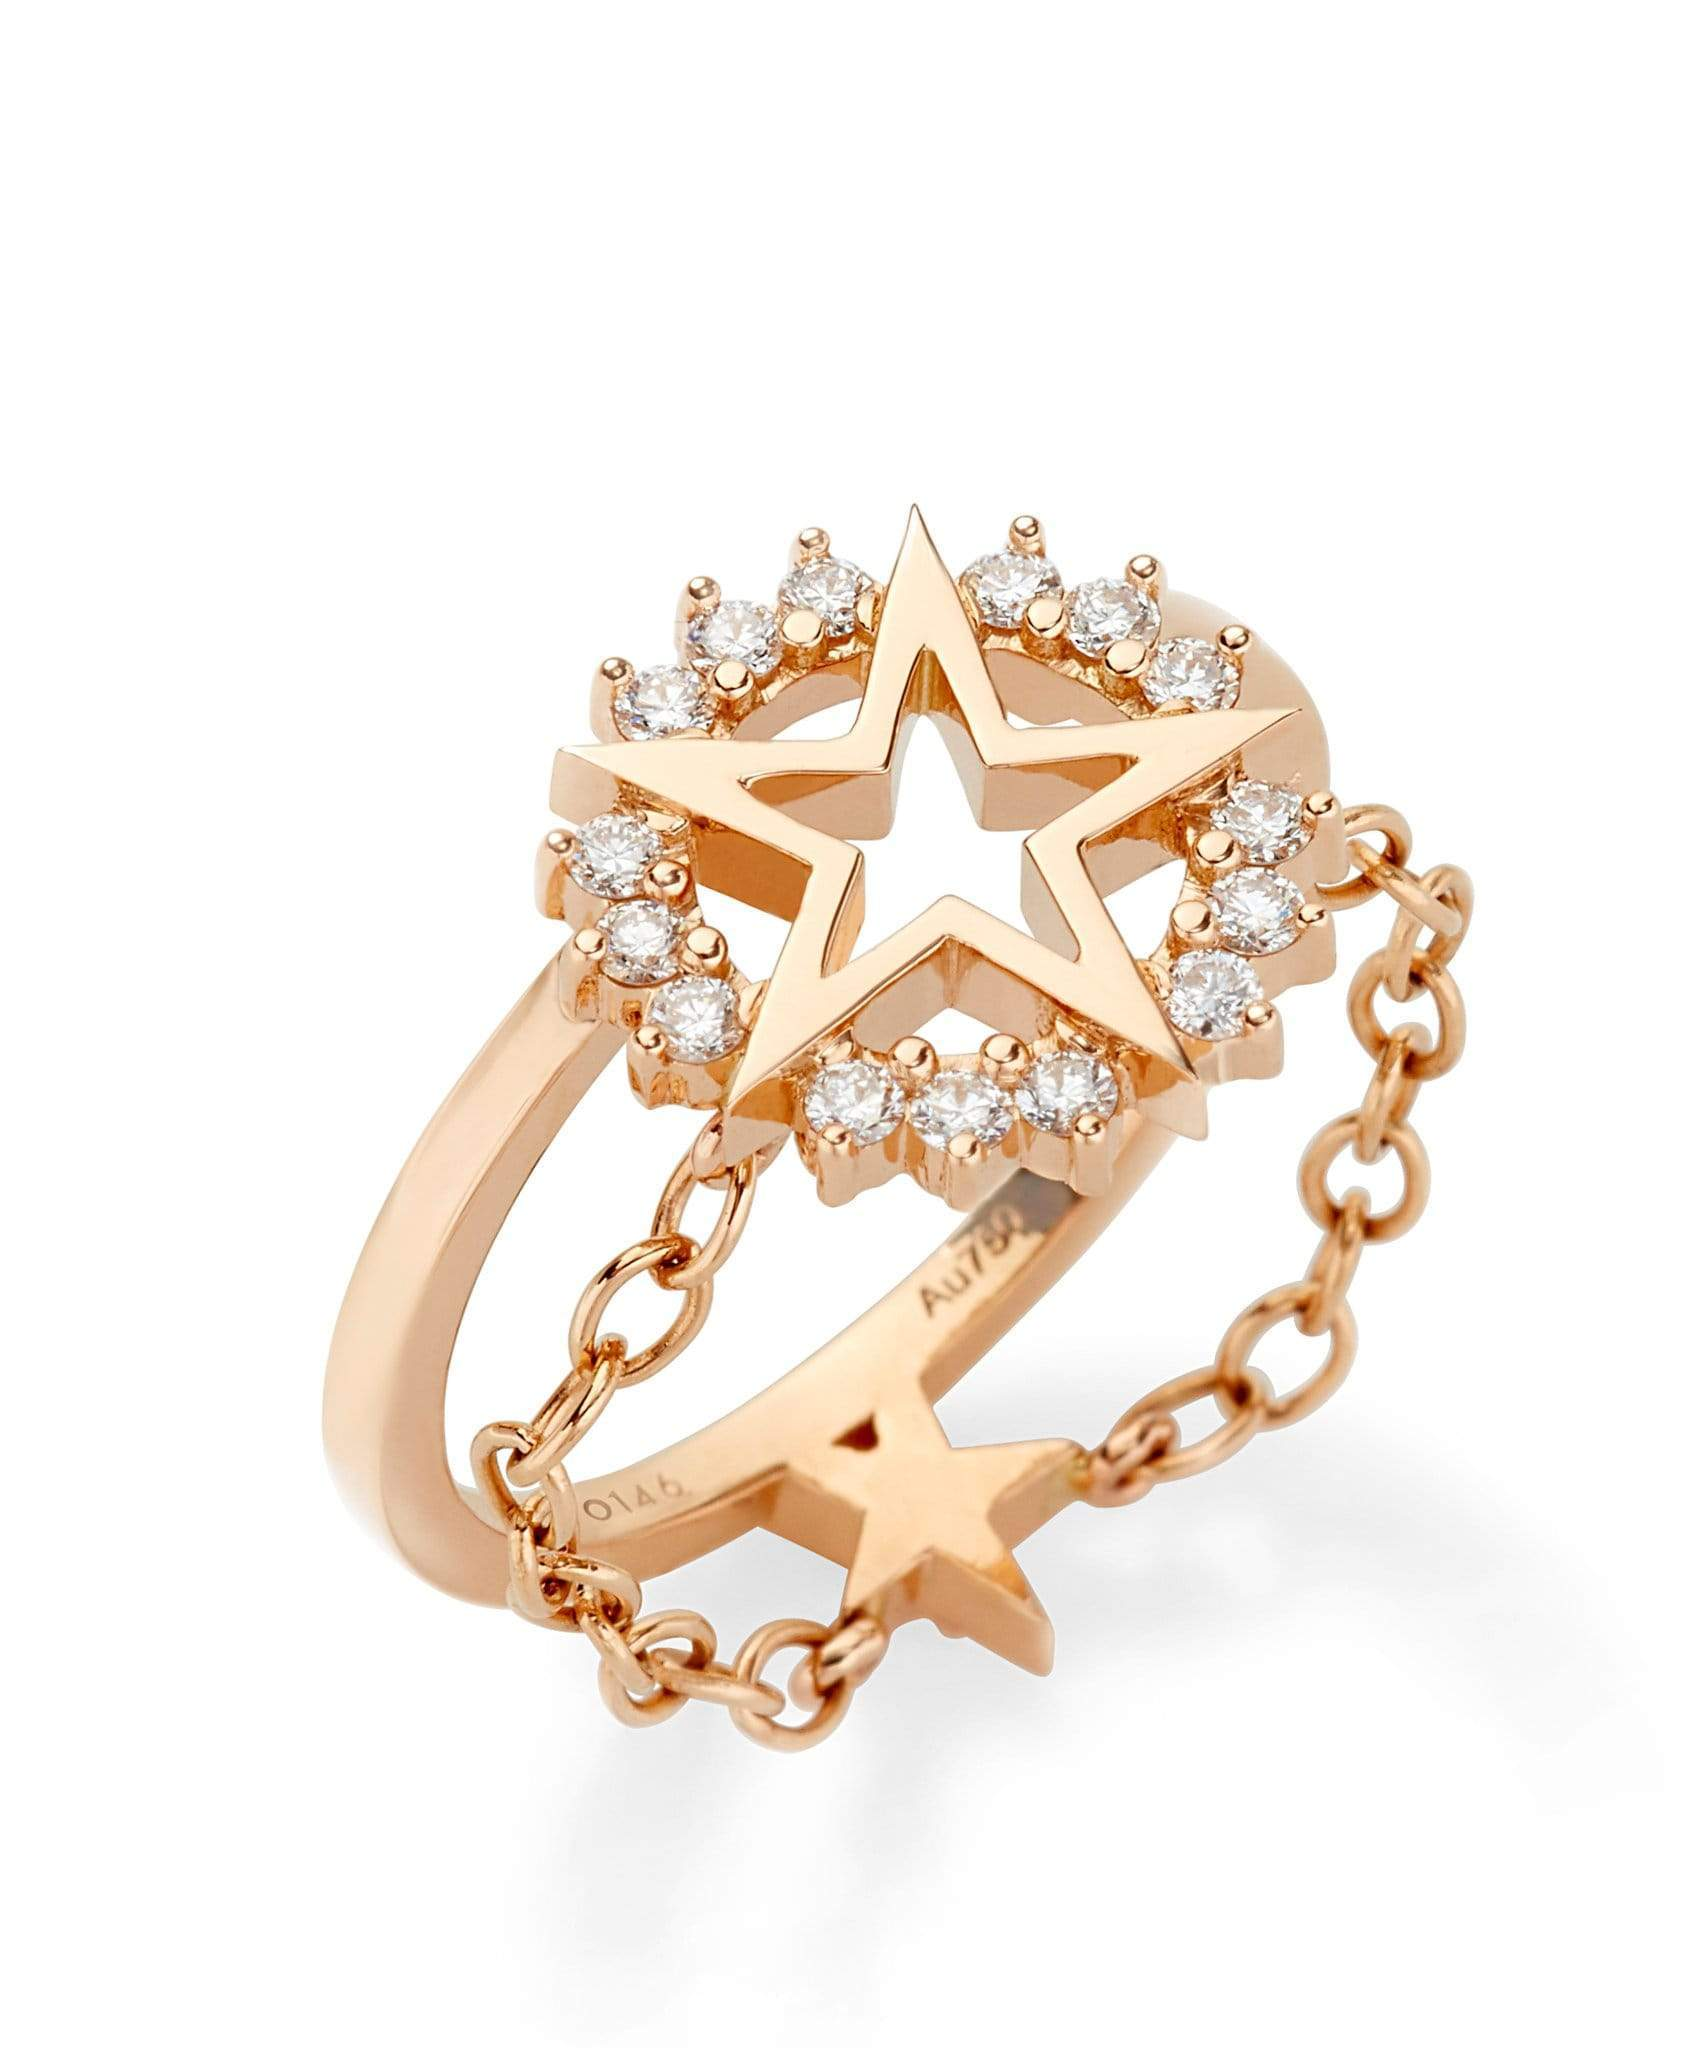 Medium Star Ring: Discover Luxury Fine Jewelry | Nouvel Heritage || Rose Gold